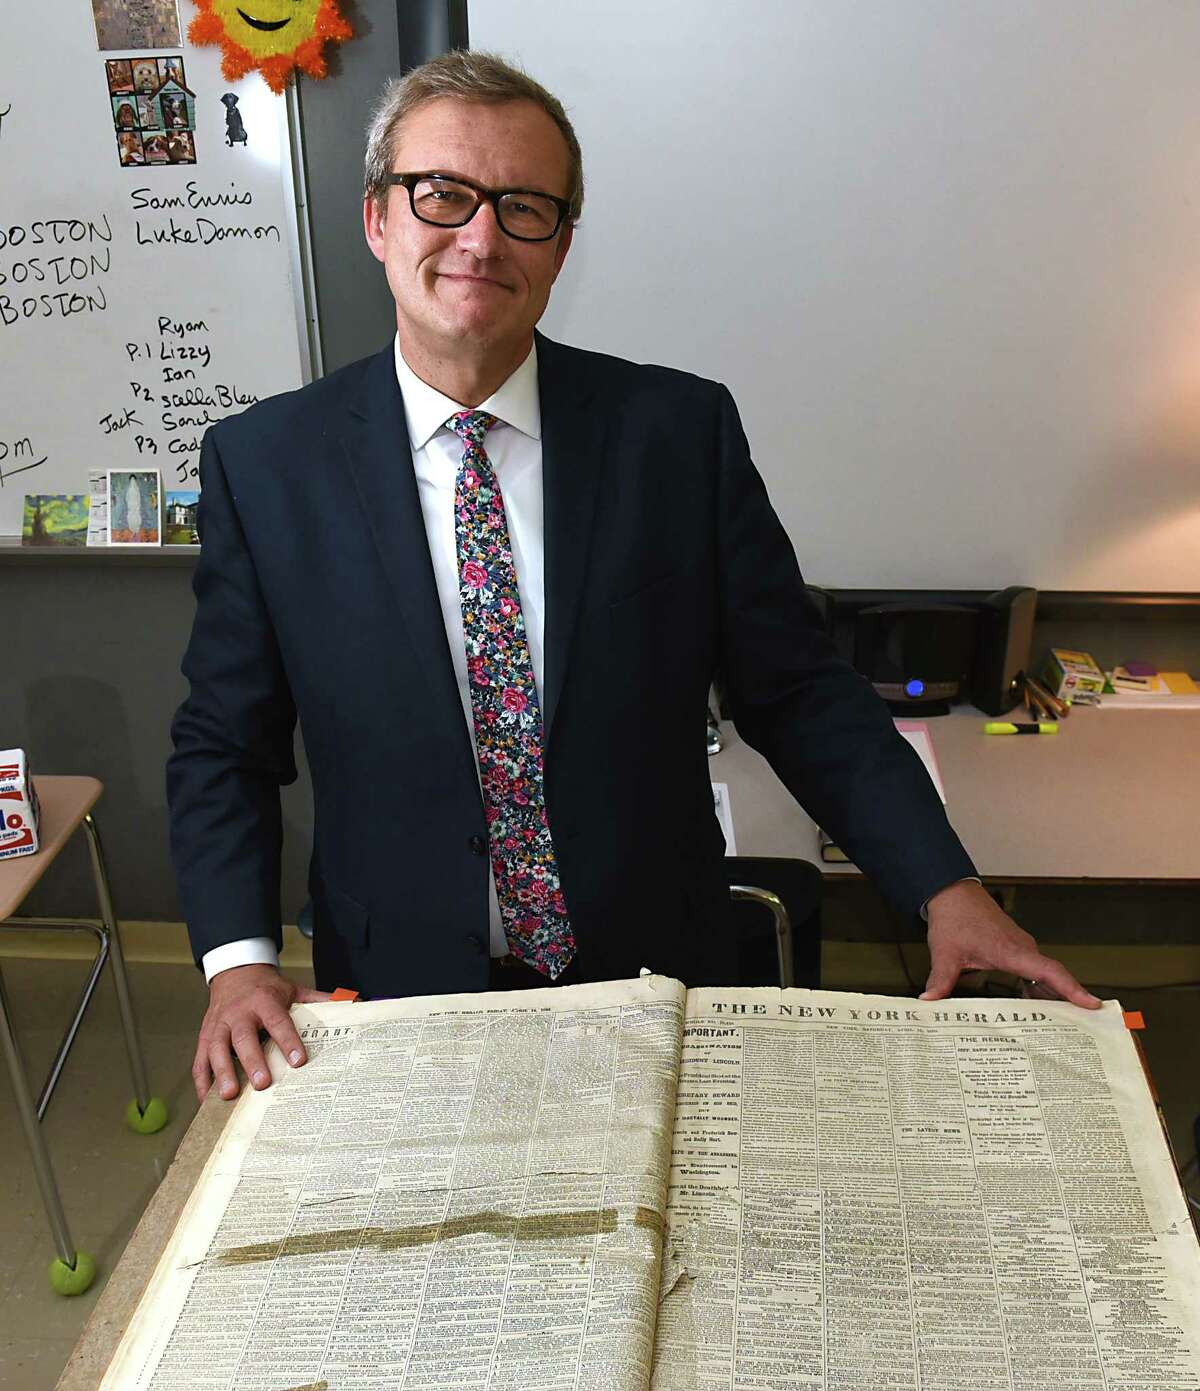 Iroquois Middle School teacher Michael Jesep stands with copies of the New York Herald from the 1860s in his classroom on Wednesday, Oct. 4, 2017 in Schenectady, N.Y. Jesep teaches 8th grade Social Studies and English. (Lori Van Buren / Times Union)